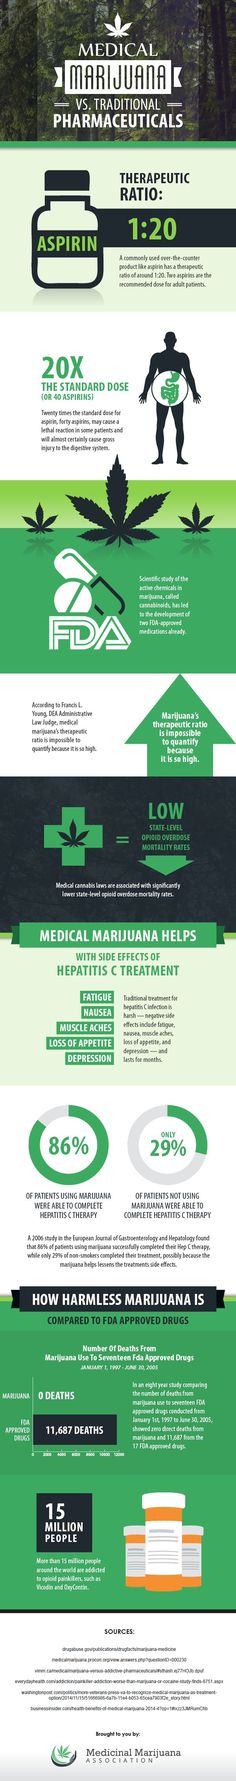 [Infographic]_Medical_Marijuana_vs._Traditional_Pharmaceuticals-_How_They_Stack_Up Marijuana educational resources